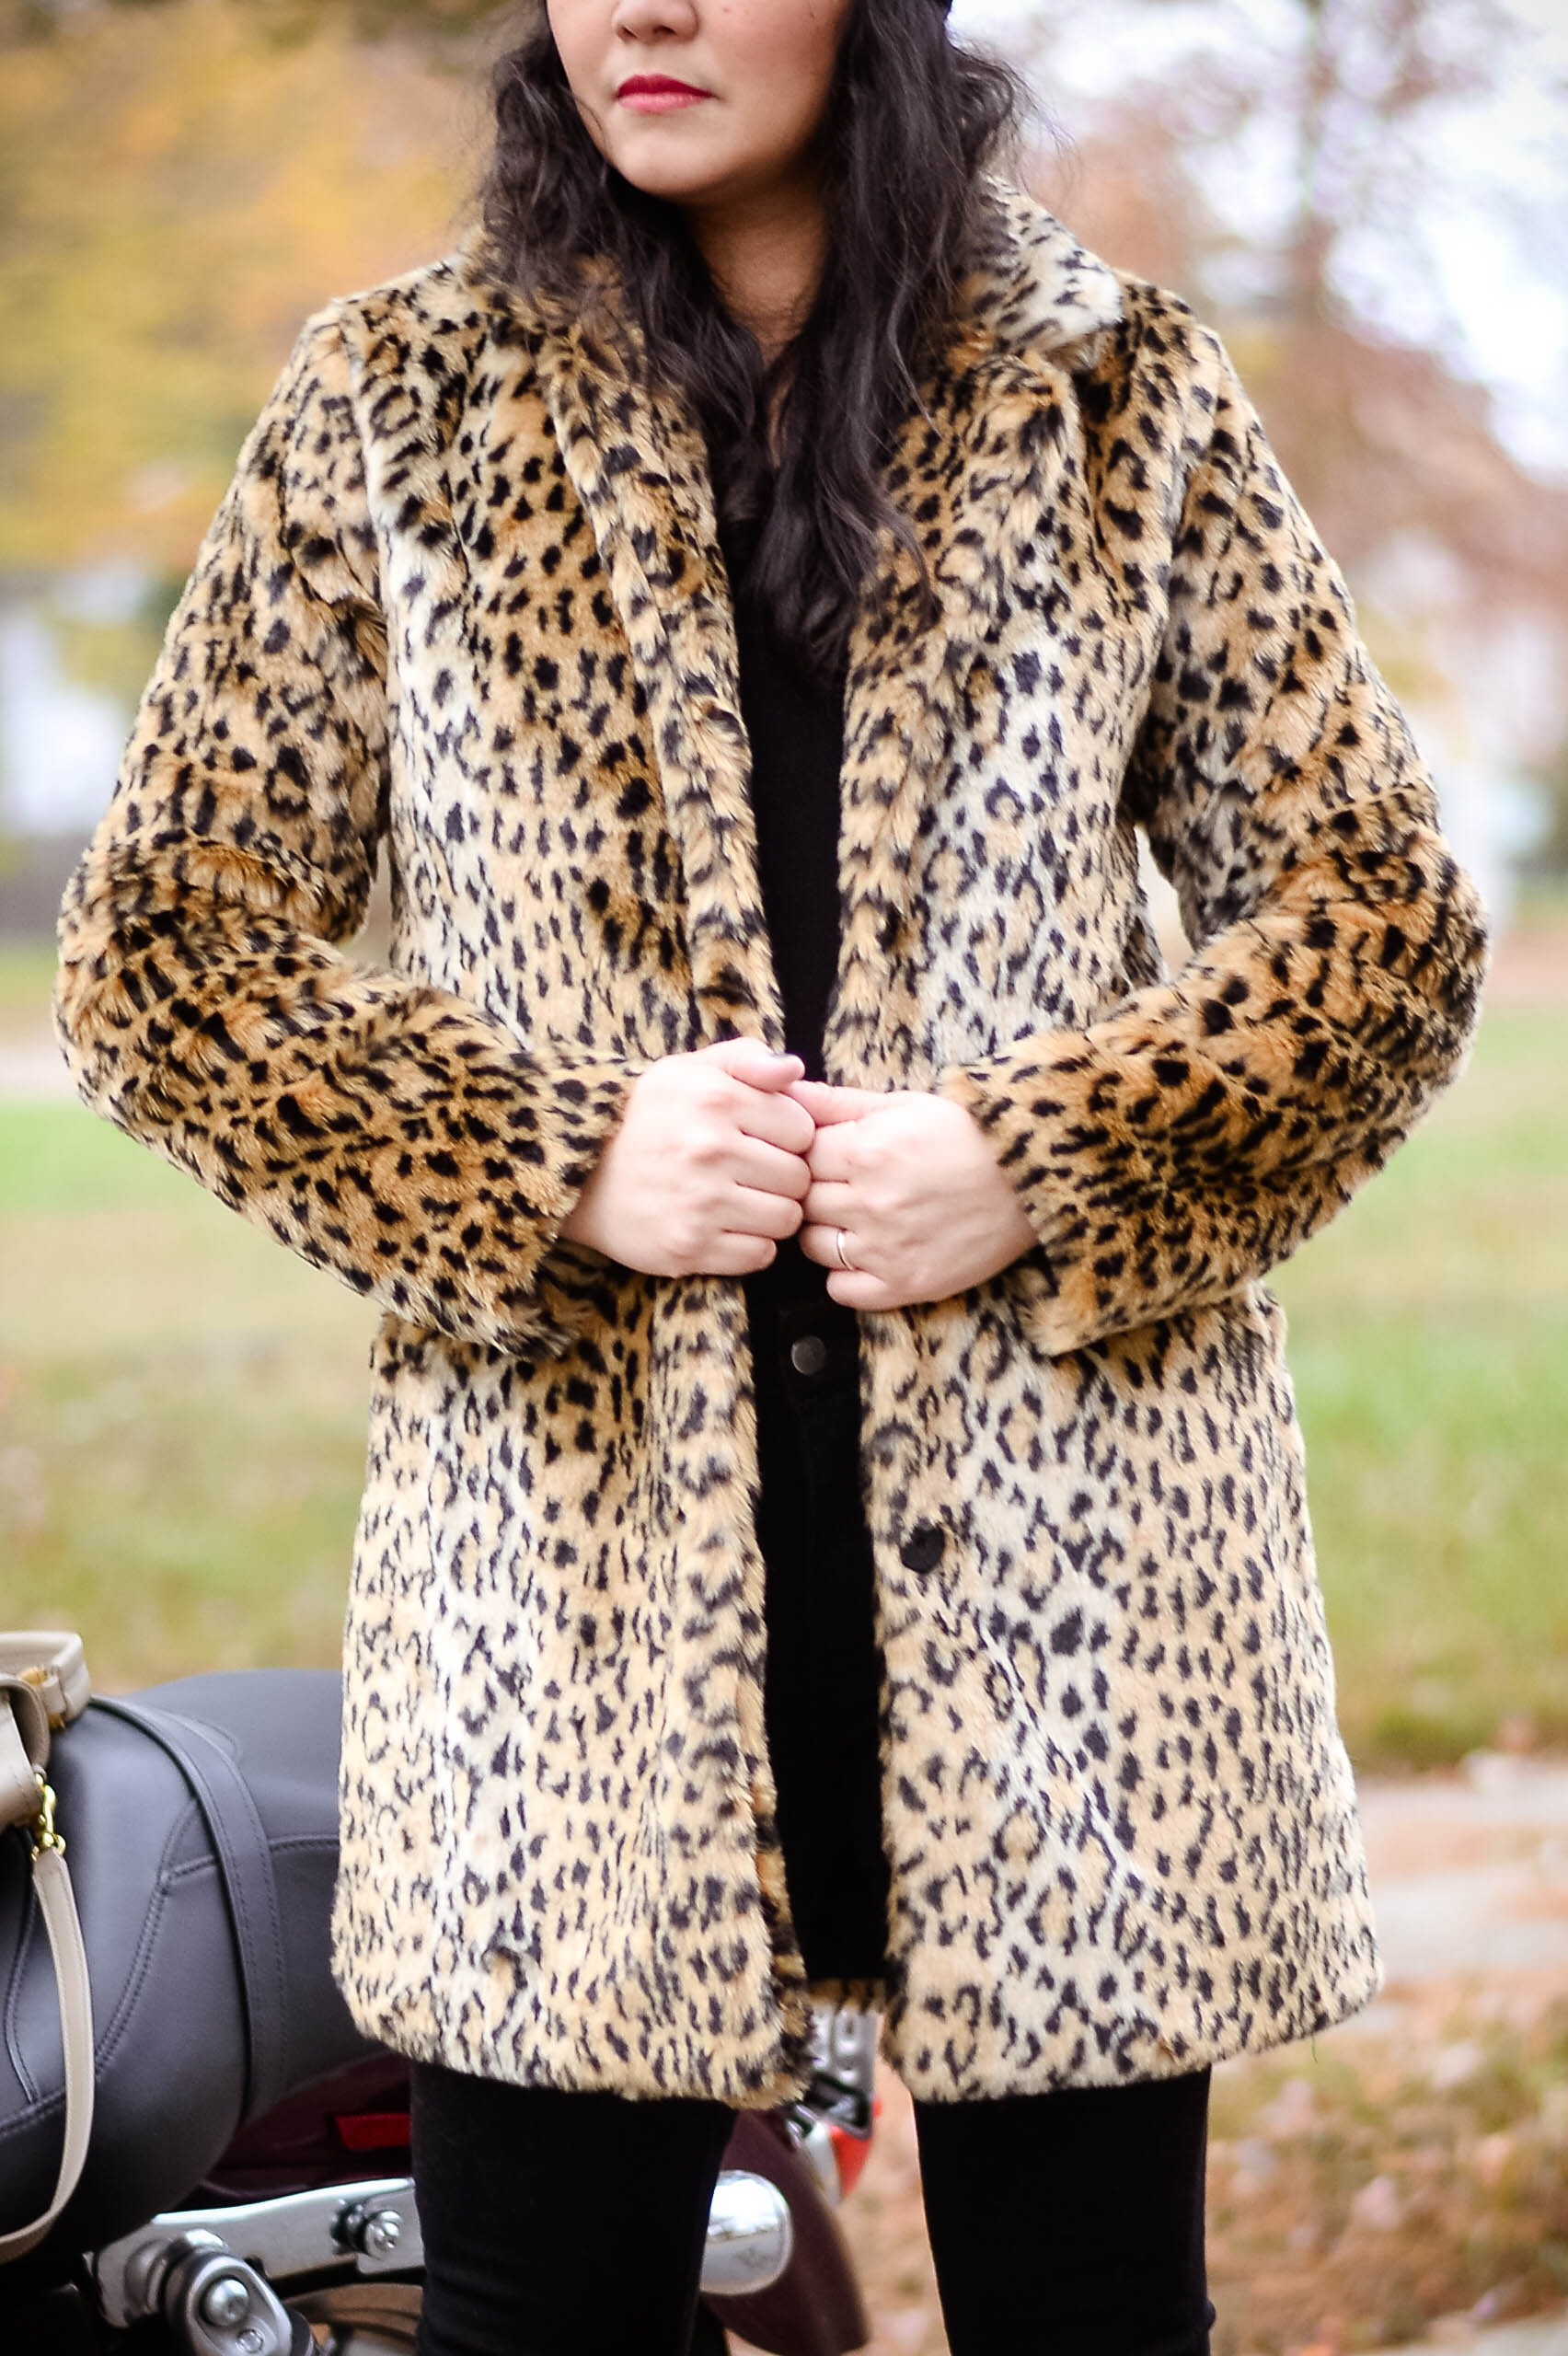 Welcoming the Week with Leopard Faux Fur Coat